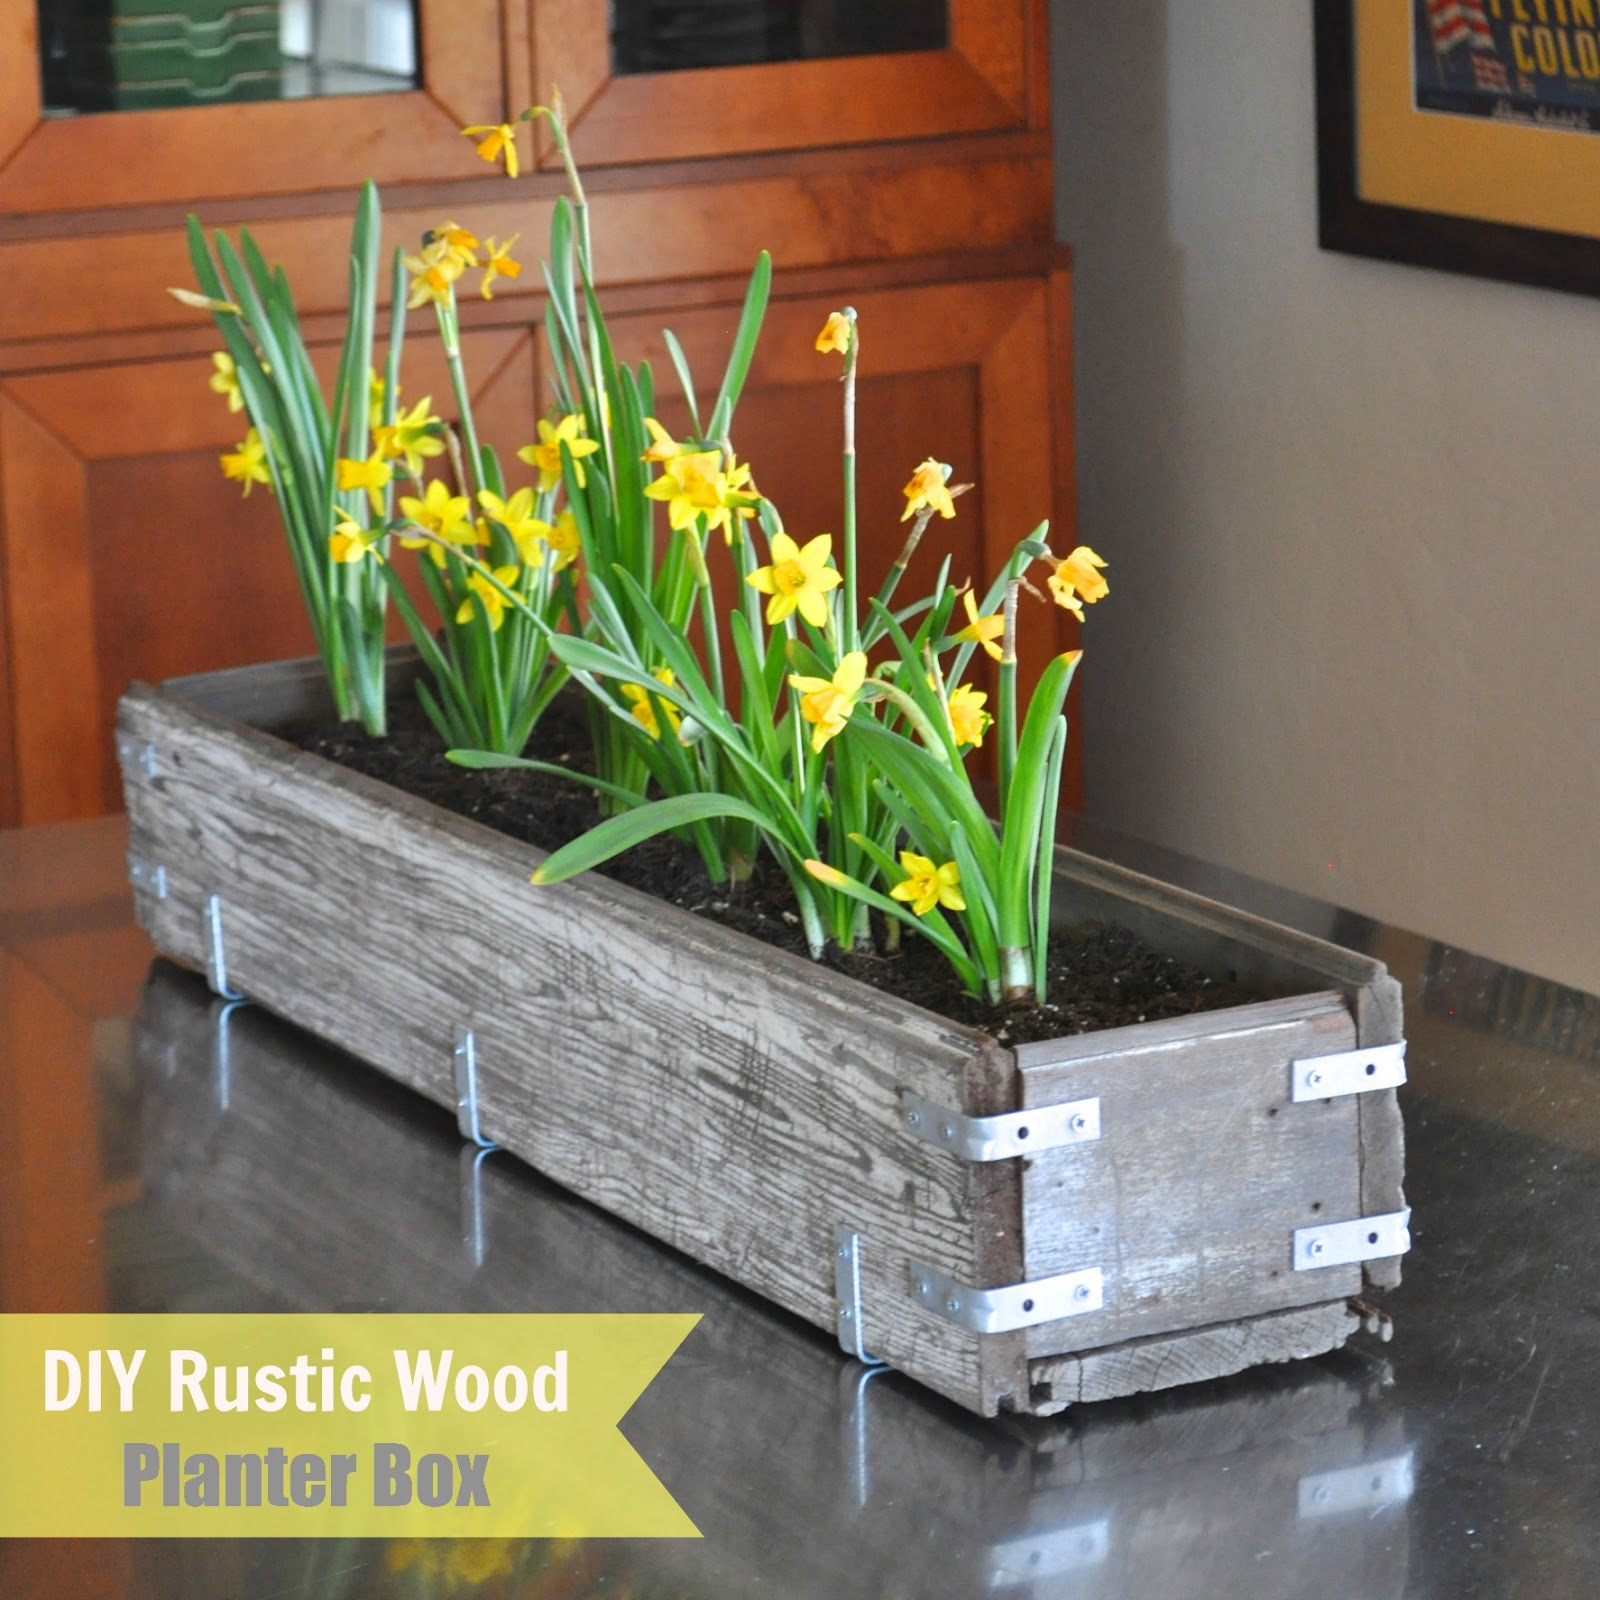 Built In Planter Ideas: DIY Rustic Wood Planter Box